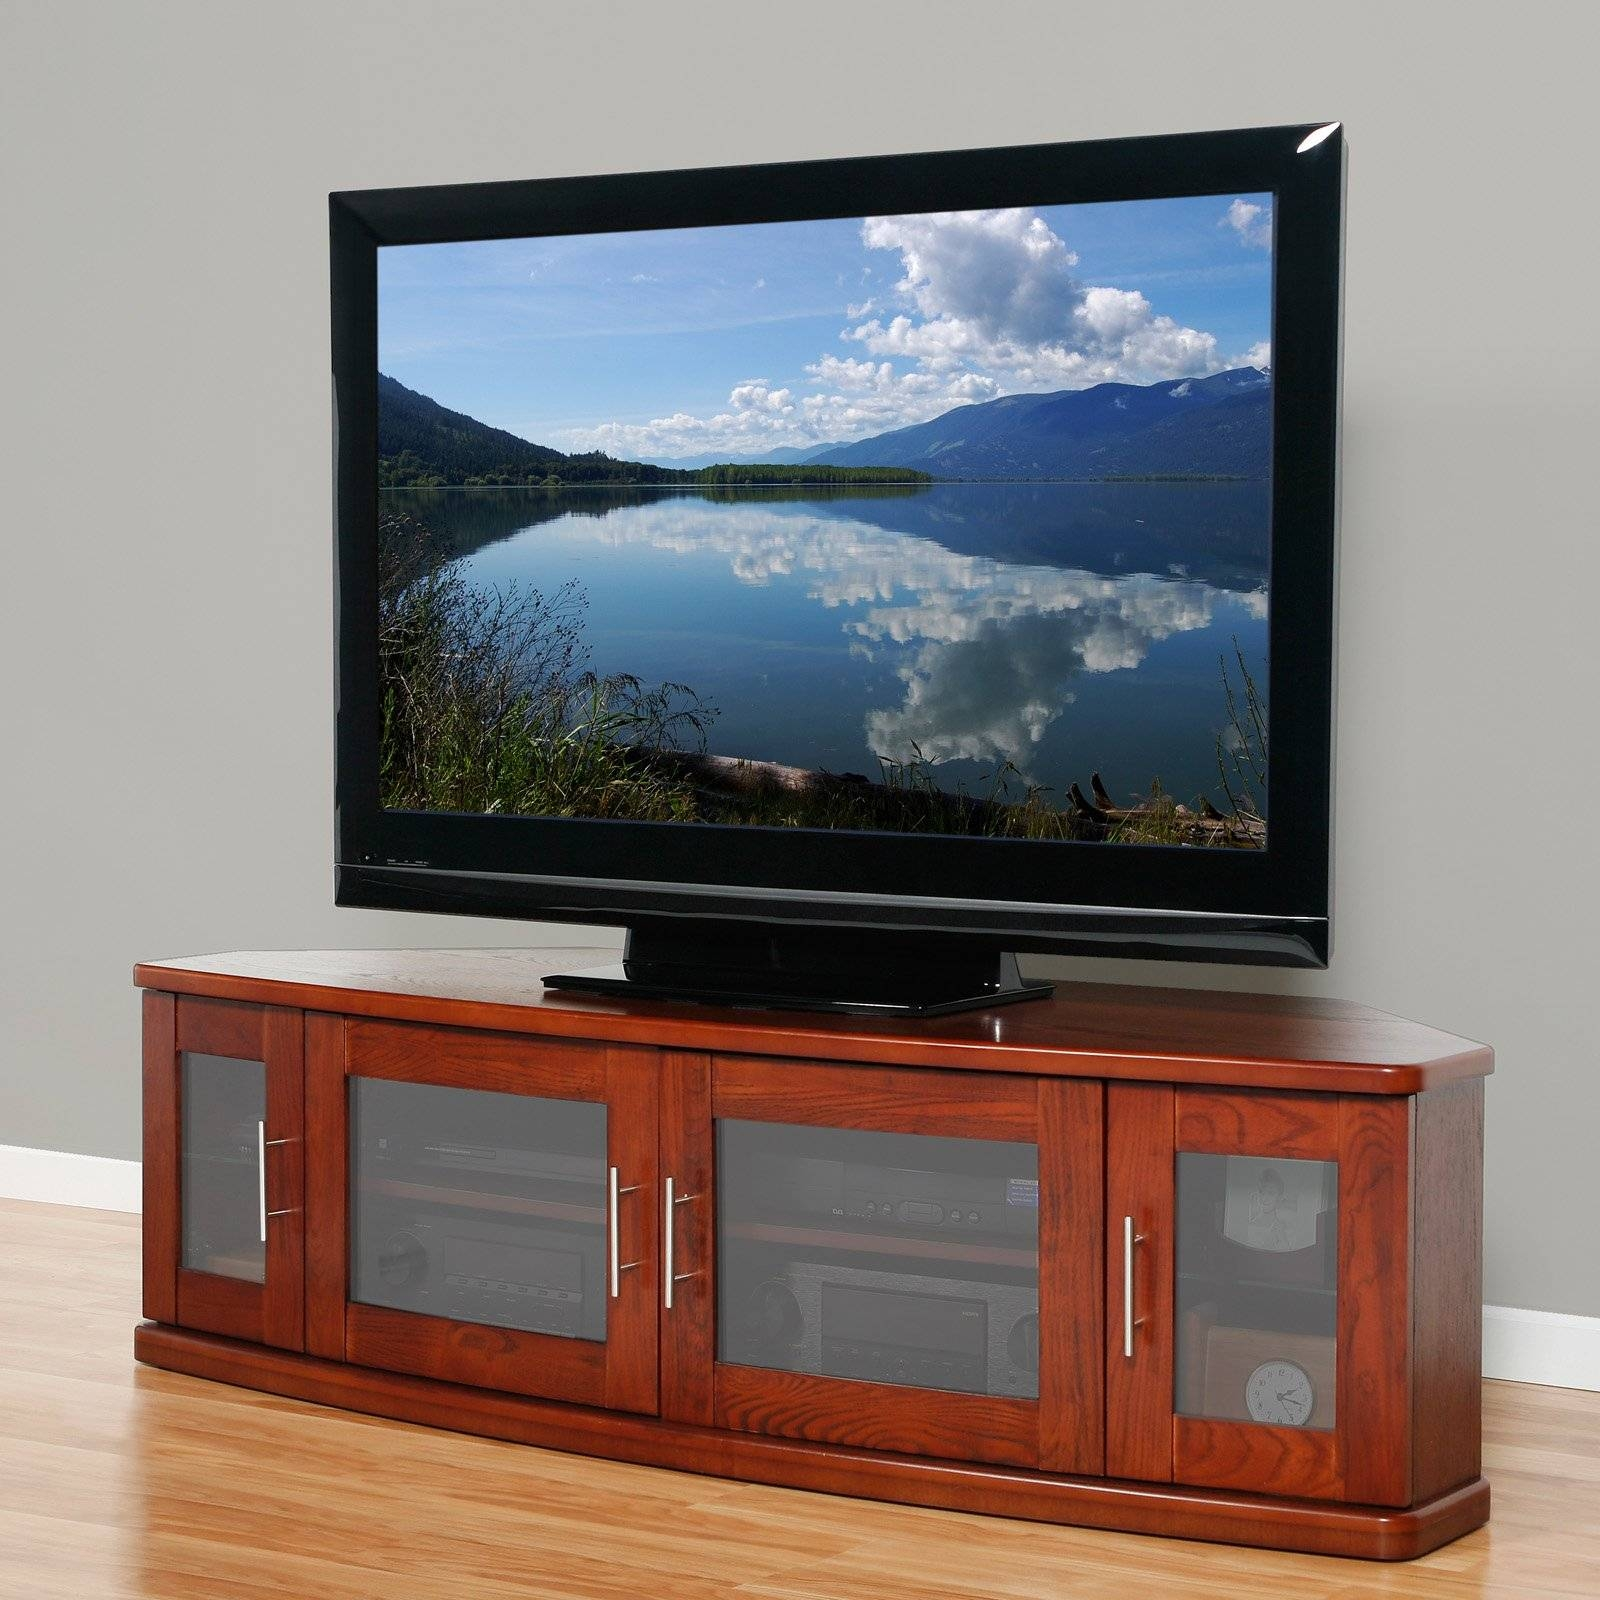 Brown Wooden Tv Cabinet With Glass Frosted Doors On The Floor with regard to Wooden Tv Cabinets With Glass Doors (Image 4 of 15)